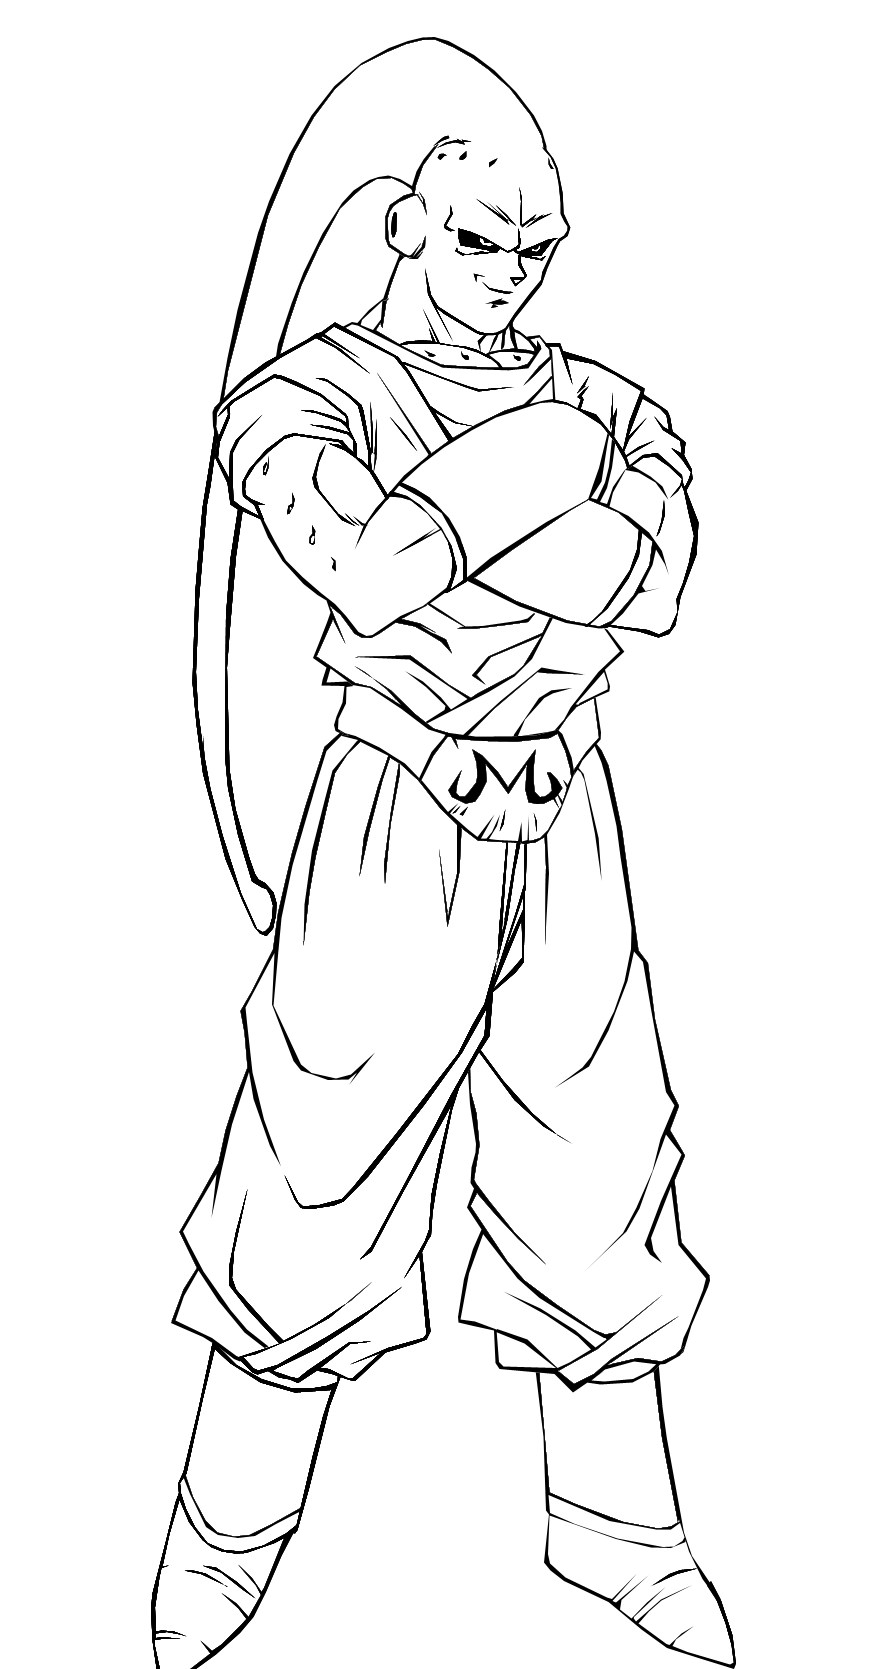 dragonball z buu coloring pages - photo#20